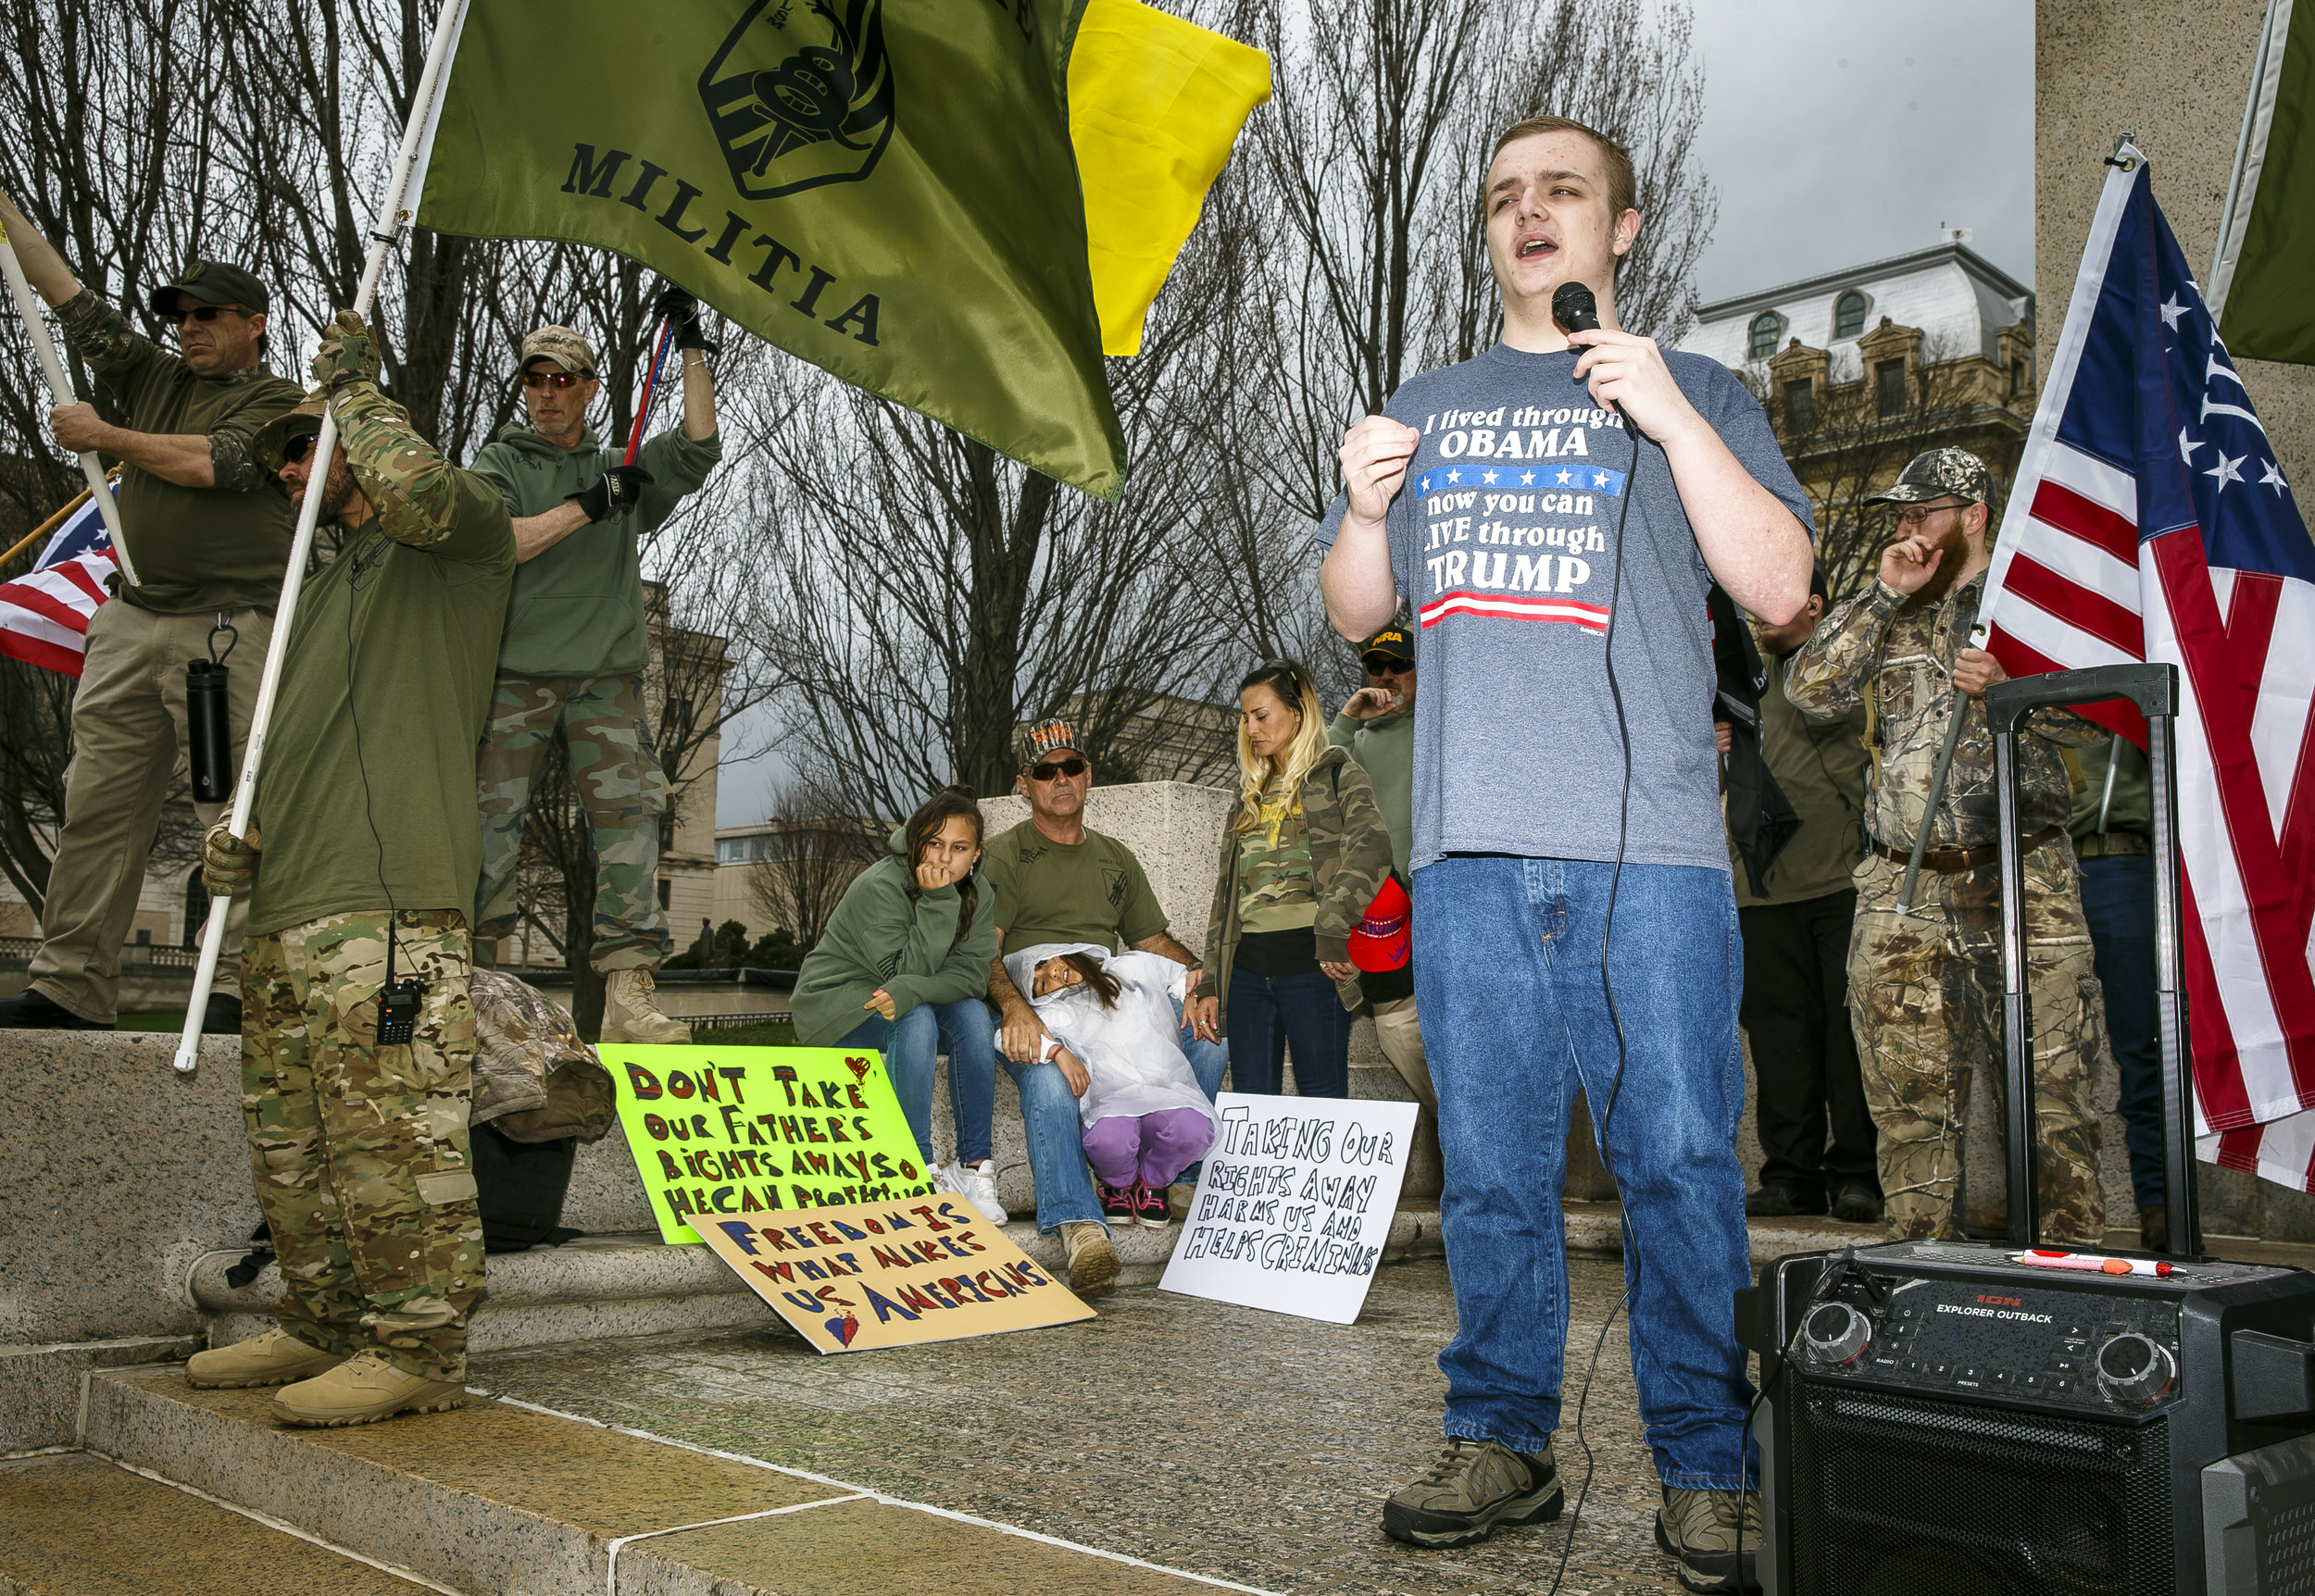 "Kaleb Huddleston, a freshman at Lanphier High School, speaks to a crowd of around 100 people gathered outside the Illinois State Capitol during a nationwide pro Second Amendment rally by the National Constitutional Coalition of Patriotic Americans and organized by the Americans for America Illinois chapter, Saturday, April 14, 2018, in Springfield, Ill. ""I would like to see us all come to an agreement but whenever weÕre pushing to take things away from people and build bigger governments thats not something I can get behind,"" said Huddleston. [Justin L. Fowler/The State Journal-Register]"